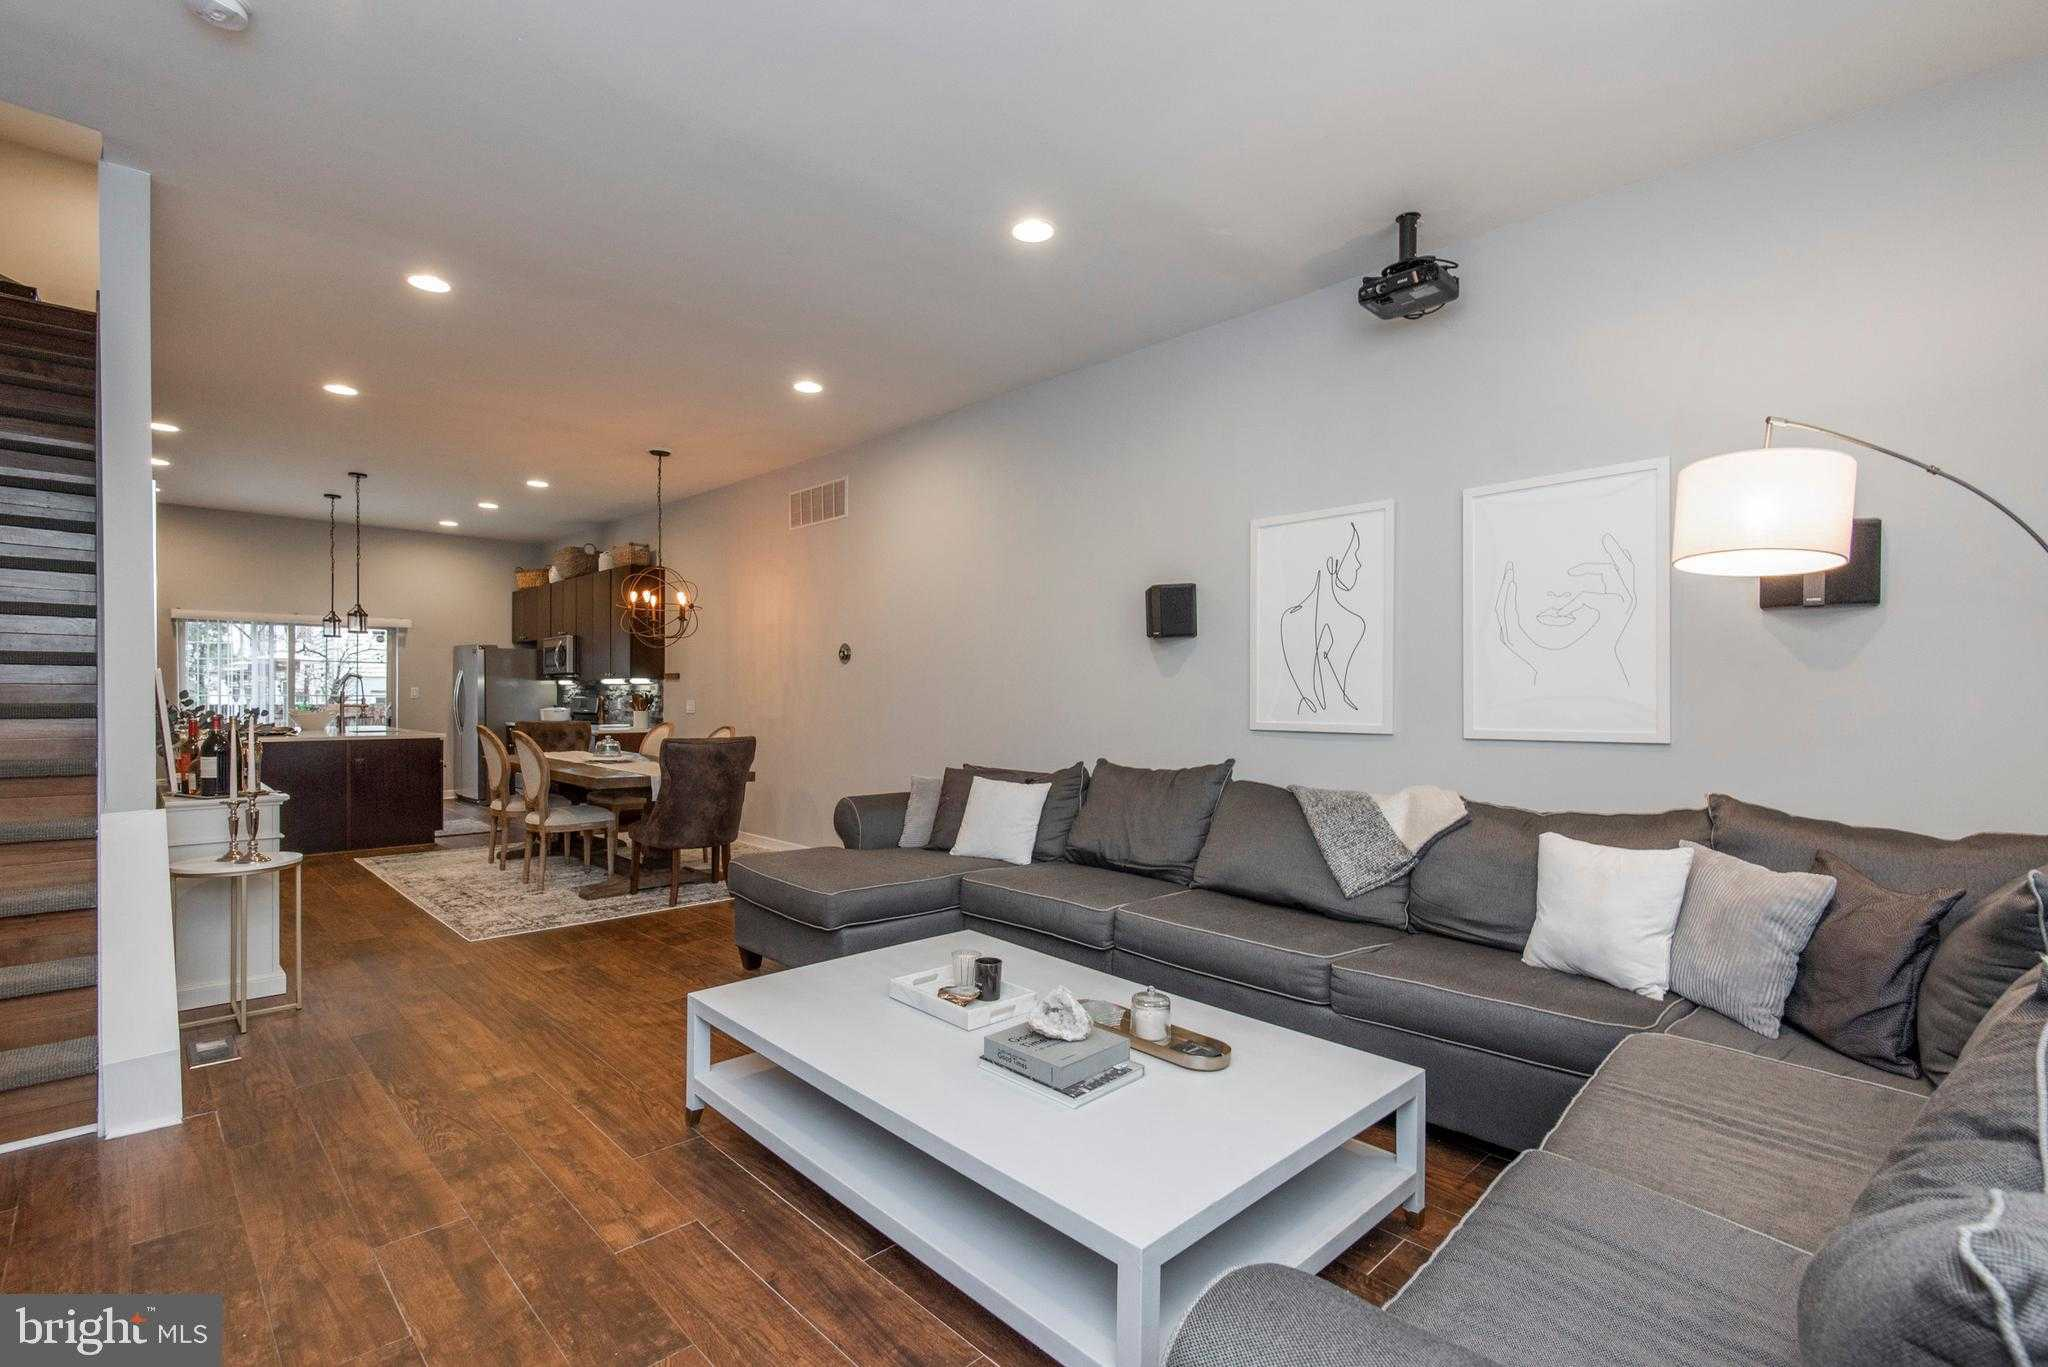 $520,000 - 4Br/3Ba -  for Sale in Manayunk, Philadelphia